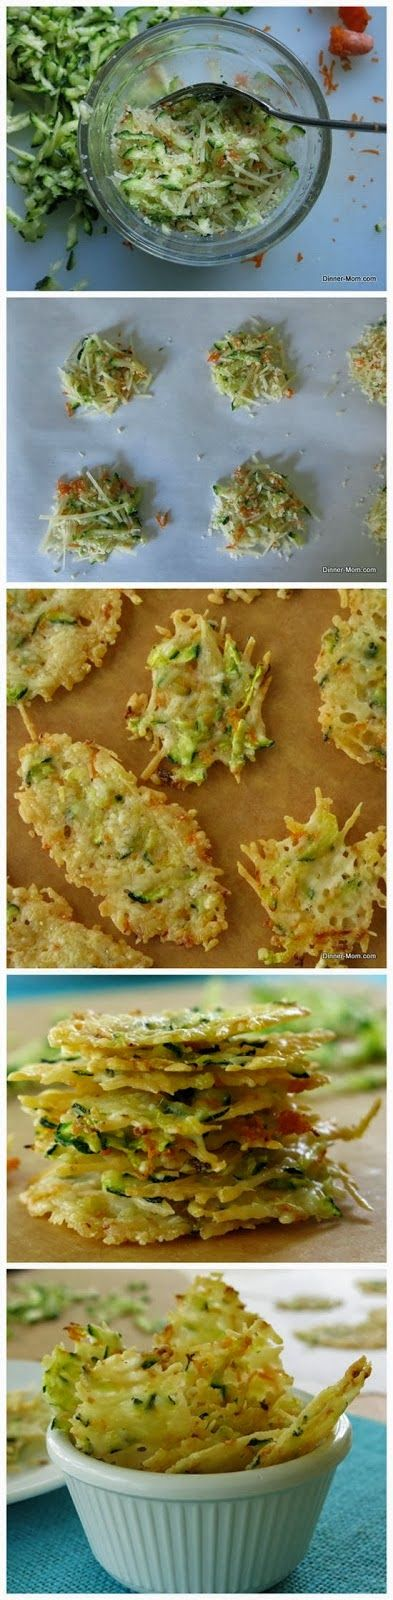 Parmesan Cheese Crisps Laced with Zucchini & Carrots - toprecipecloud